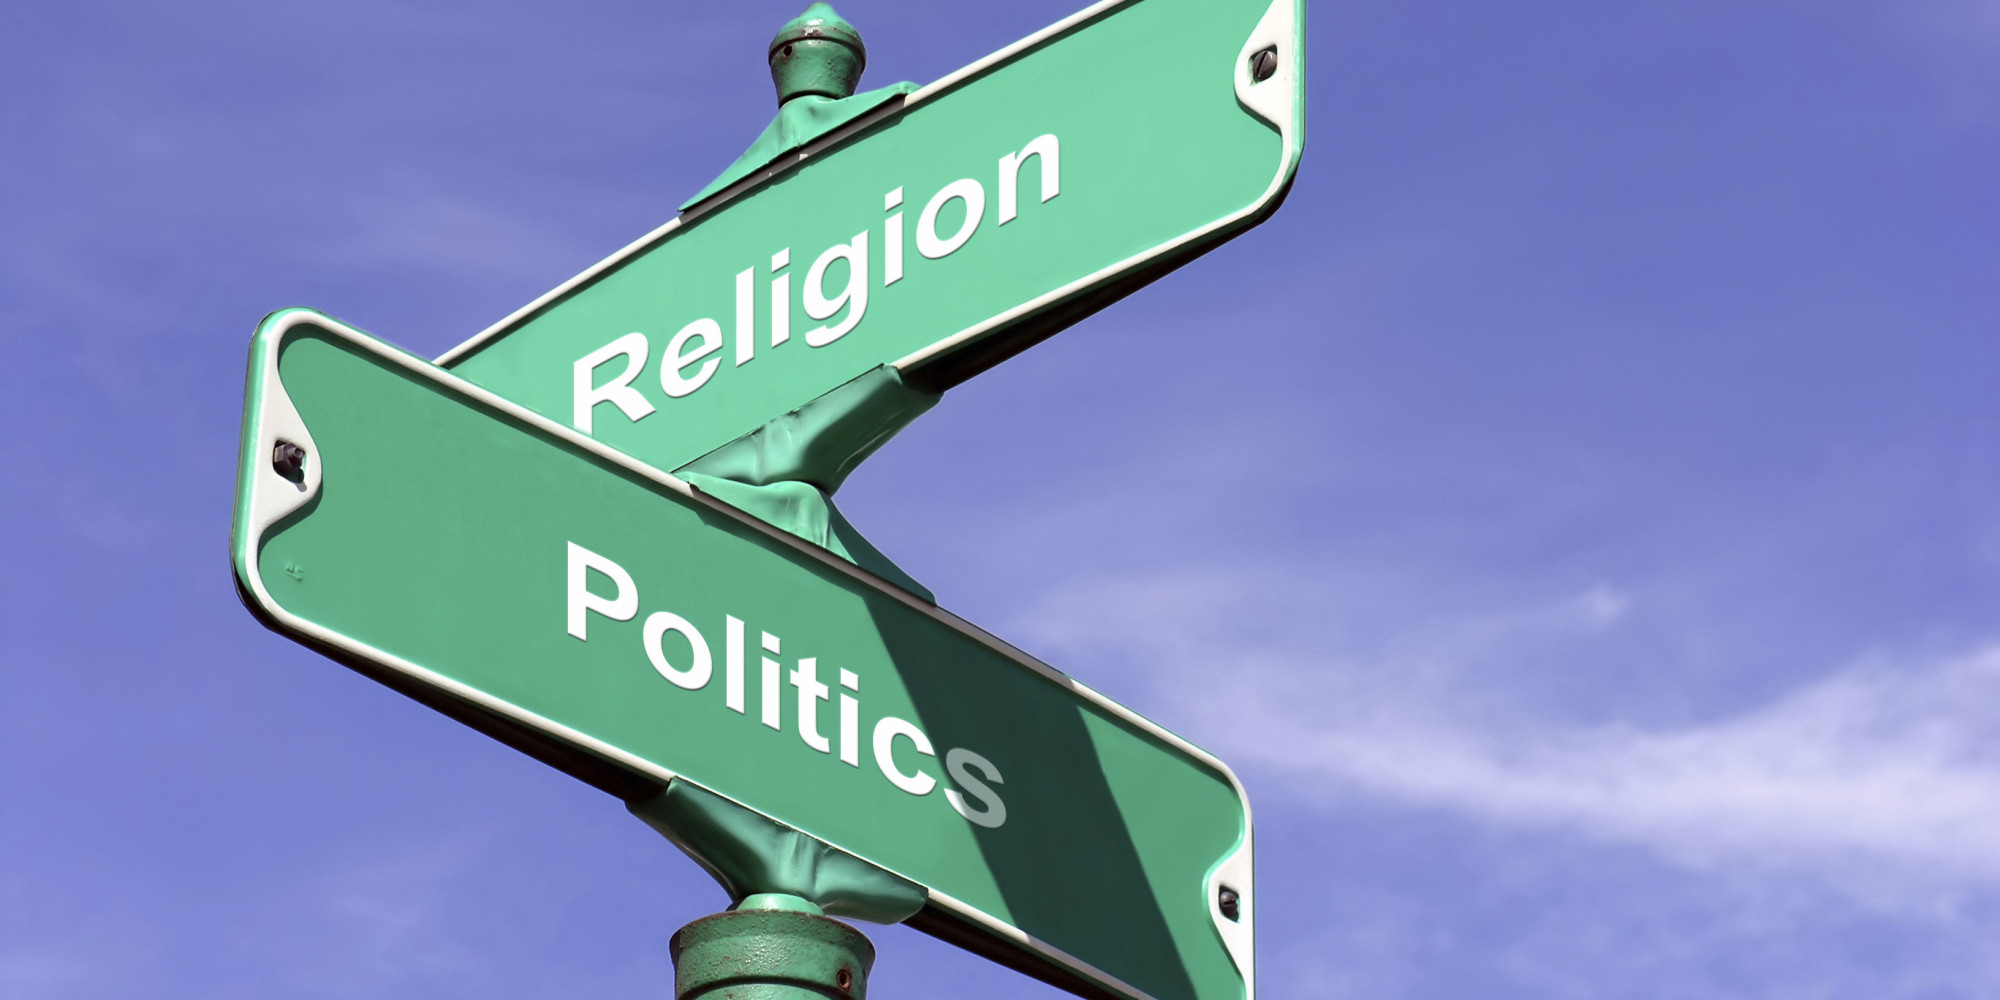 essay on religion in politics in india  · religion and politics in italy write an essay about religion and politics in italy how does religion in italy affect/ influence politics and vice versa.